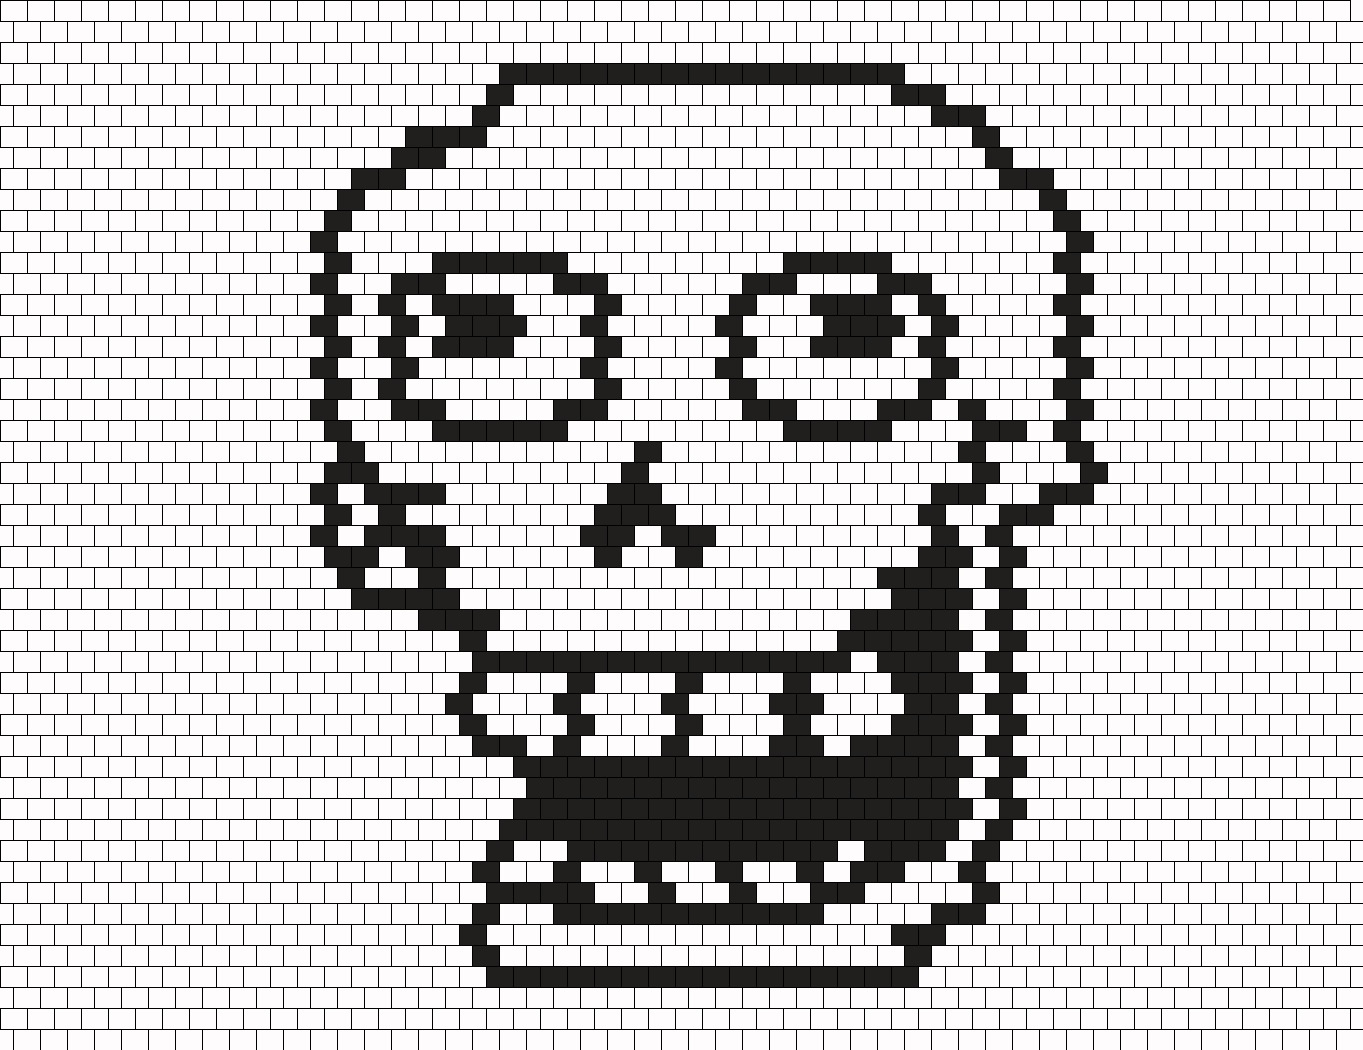 Goofy Papyrus Face Sprite